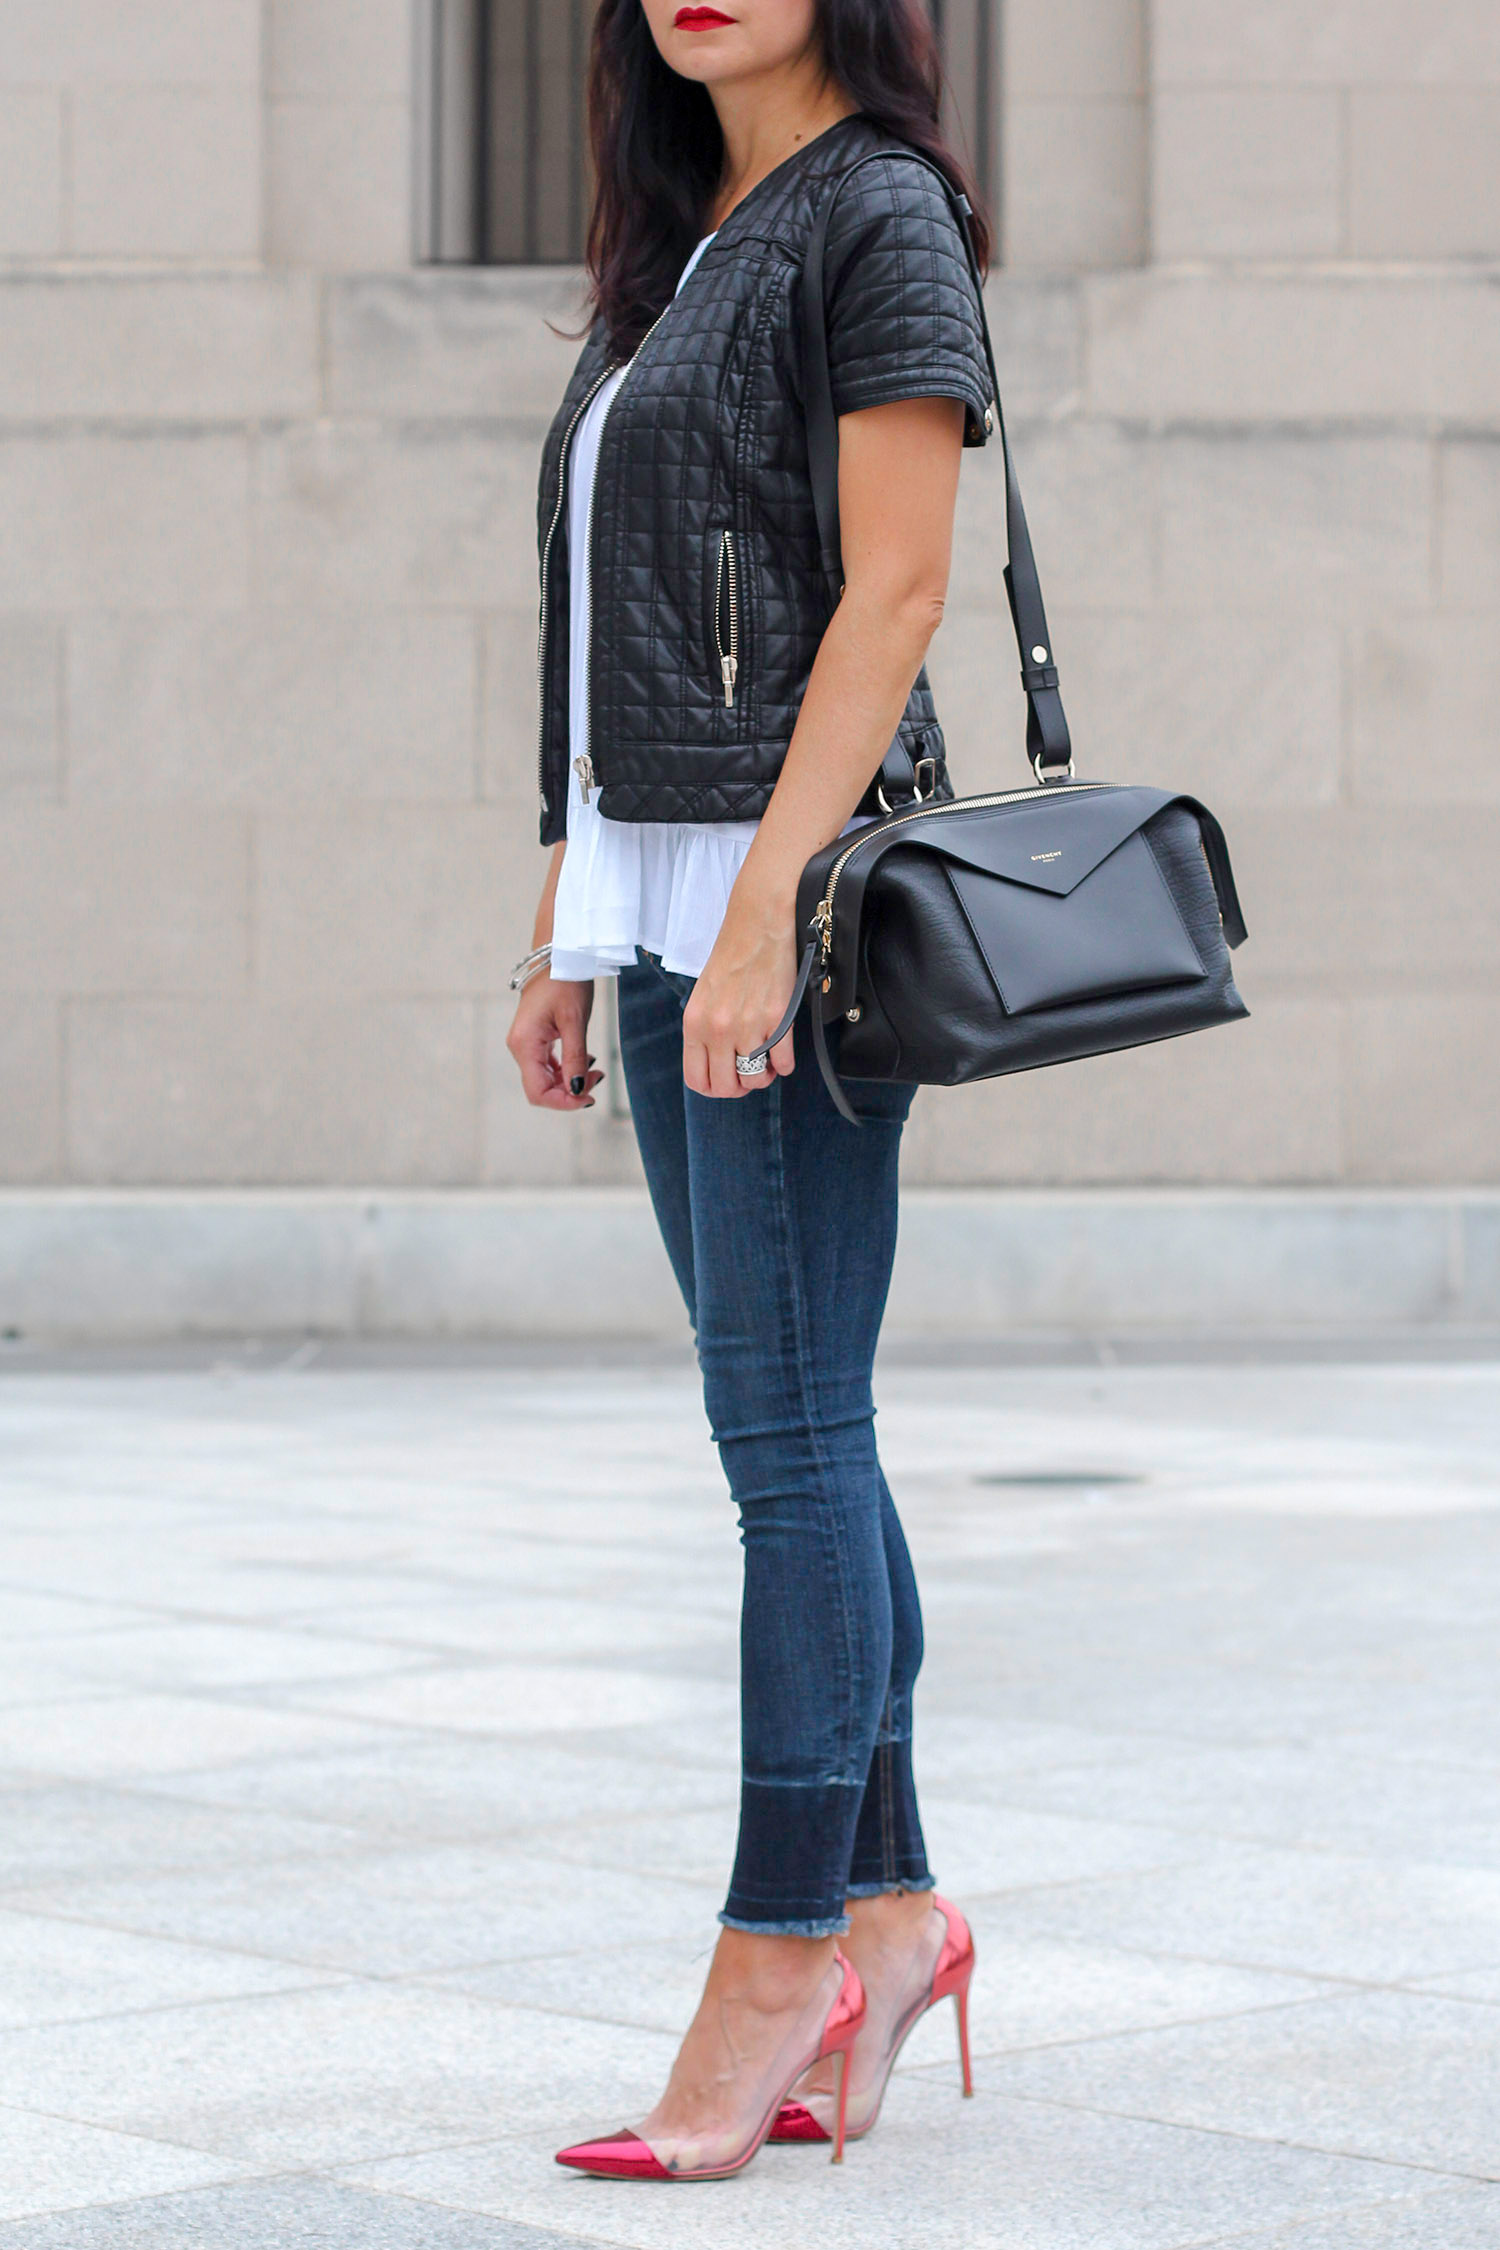 Peplum Top, Rag and Bone Skinny Jeans